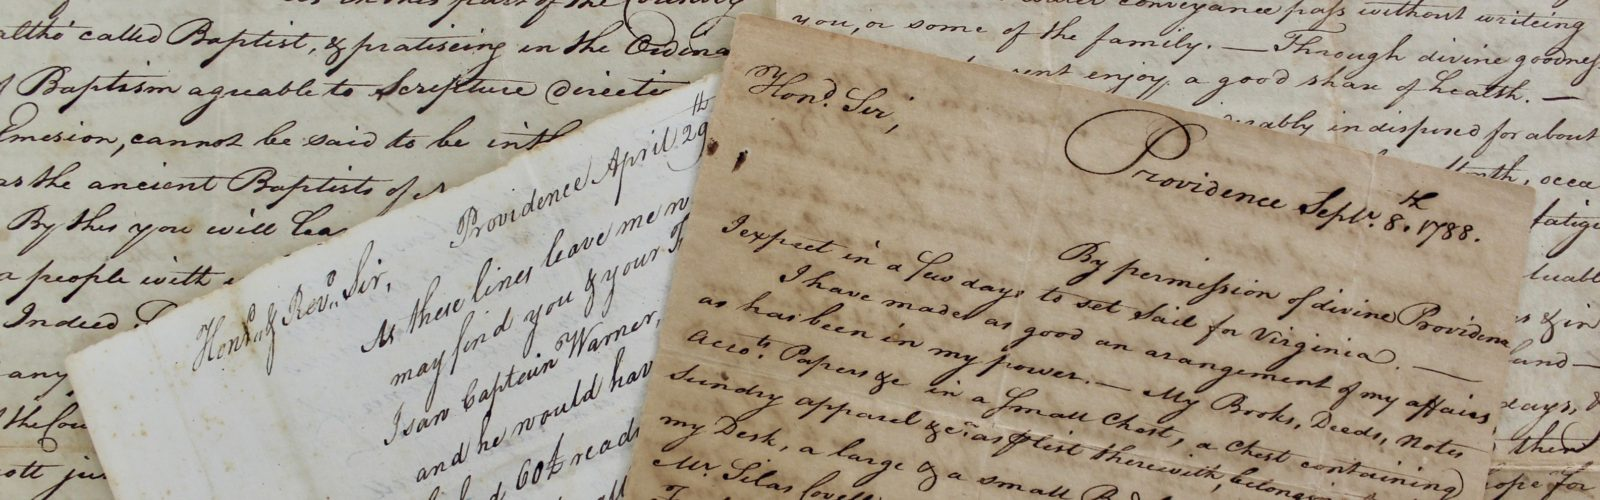 18th Century letters related to the constitution